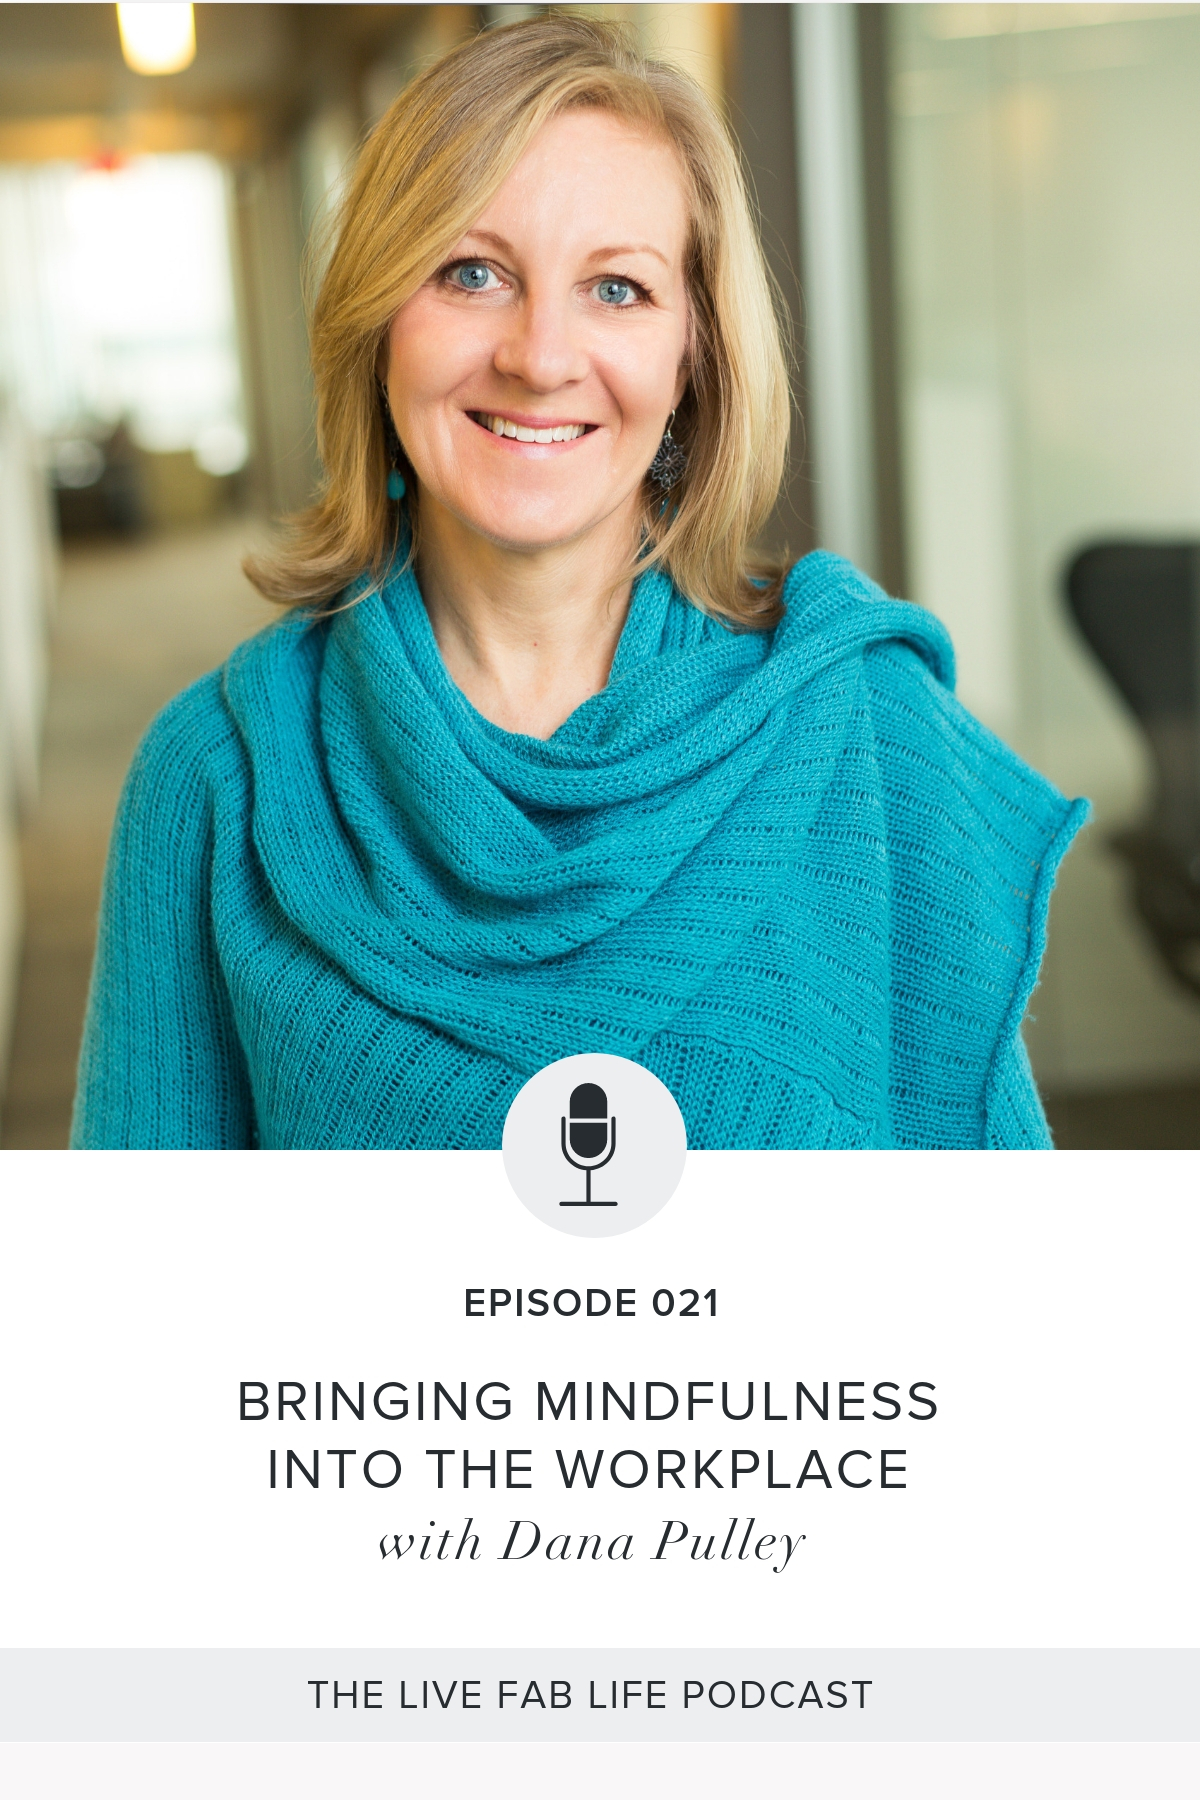 Episode 021: Bringing Mindfulness into the Workplace with Dana Pulley